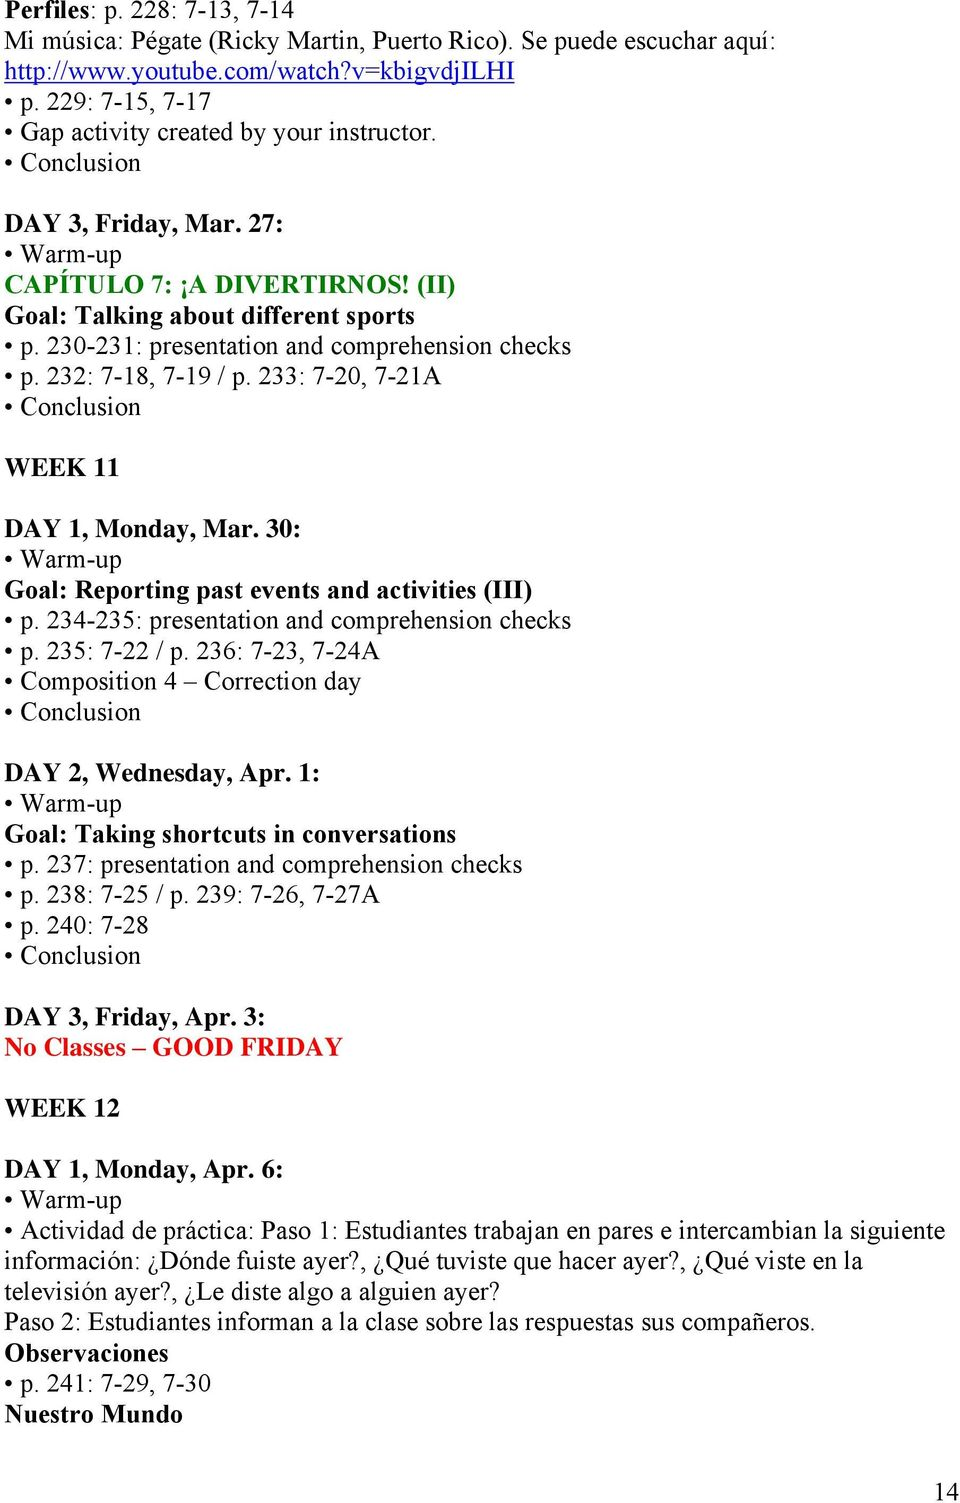 230-231: presentation and comprehension checks p. 232: 7-18, 7-19 / p. 233: 7-20, 7-21A WEEK 11 DAY 1, Monday, Mar. 30: Goal: Reporting past events and activities (III) p.